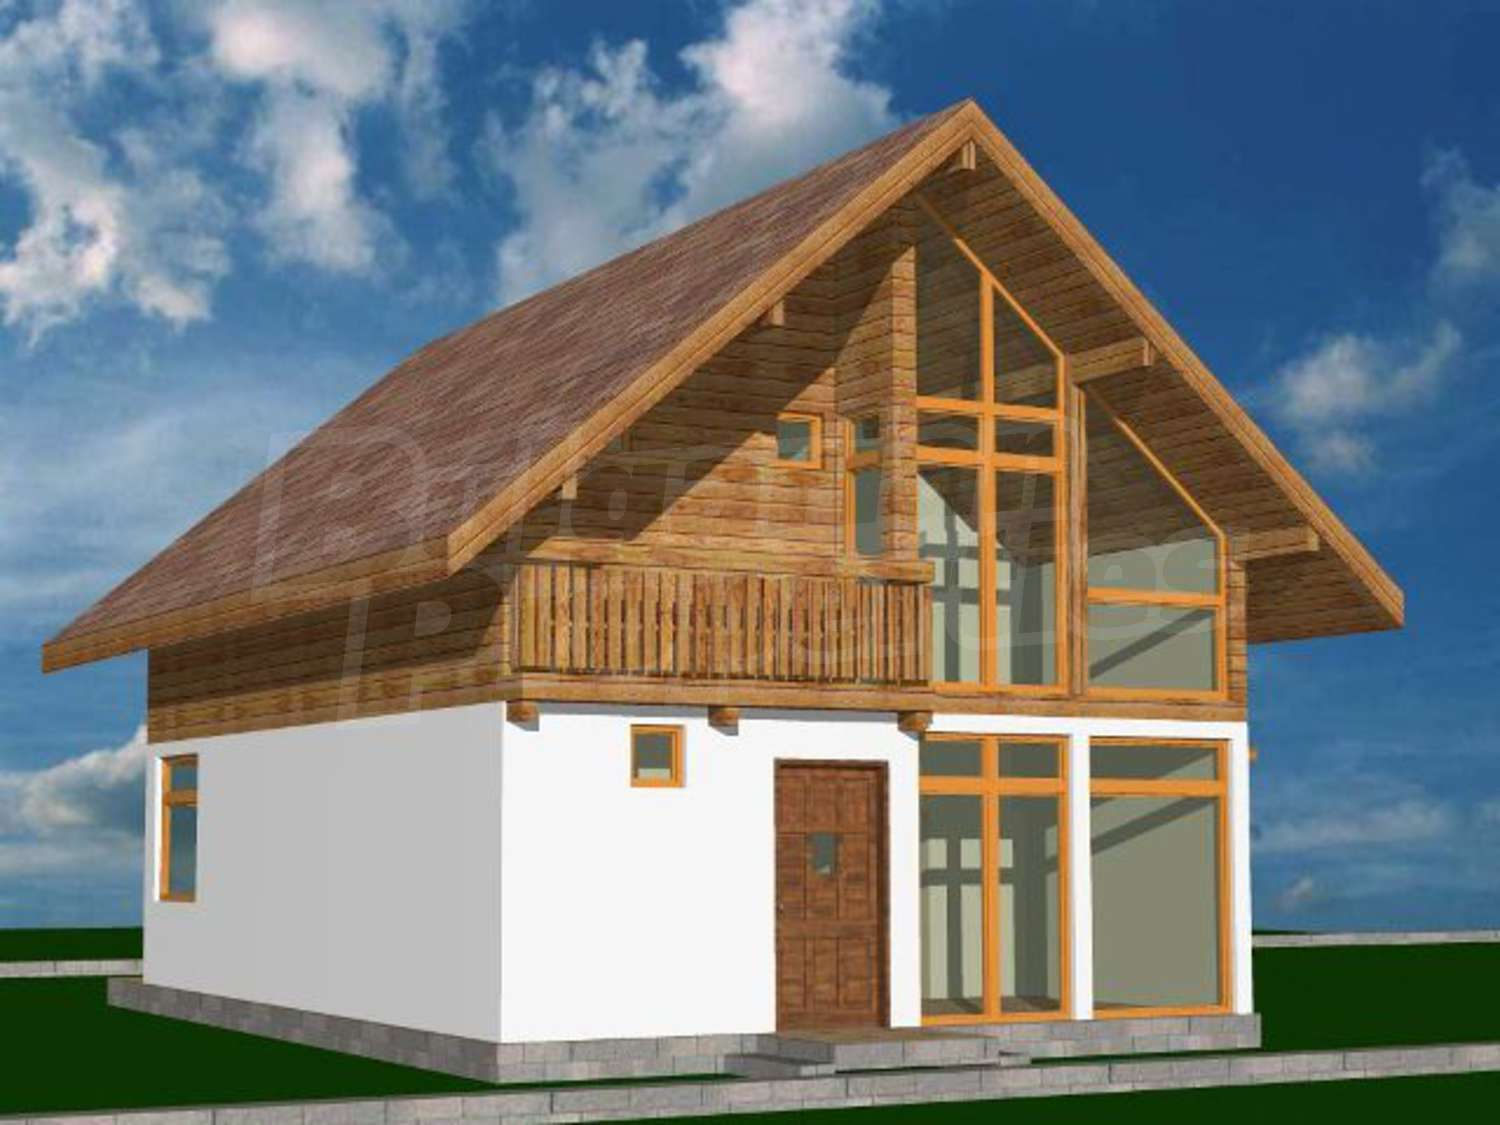 Land for sale in sokolovo bulgaria a yard with a house House plans for golf course lots